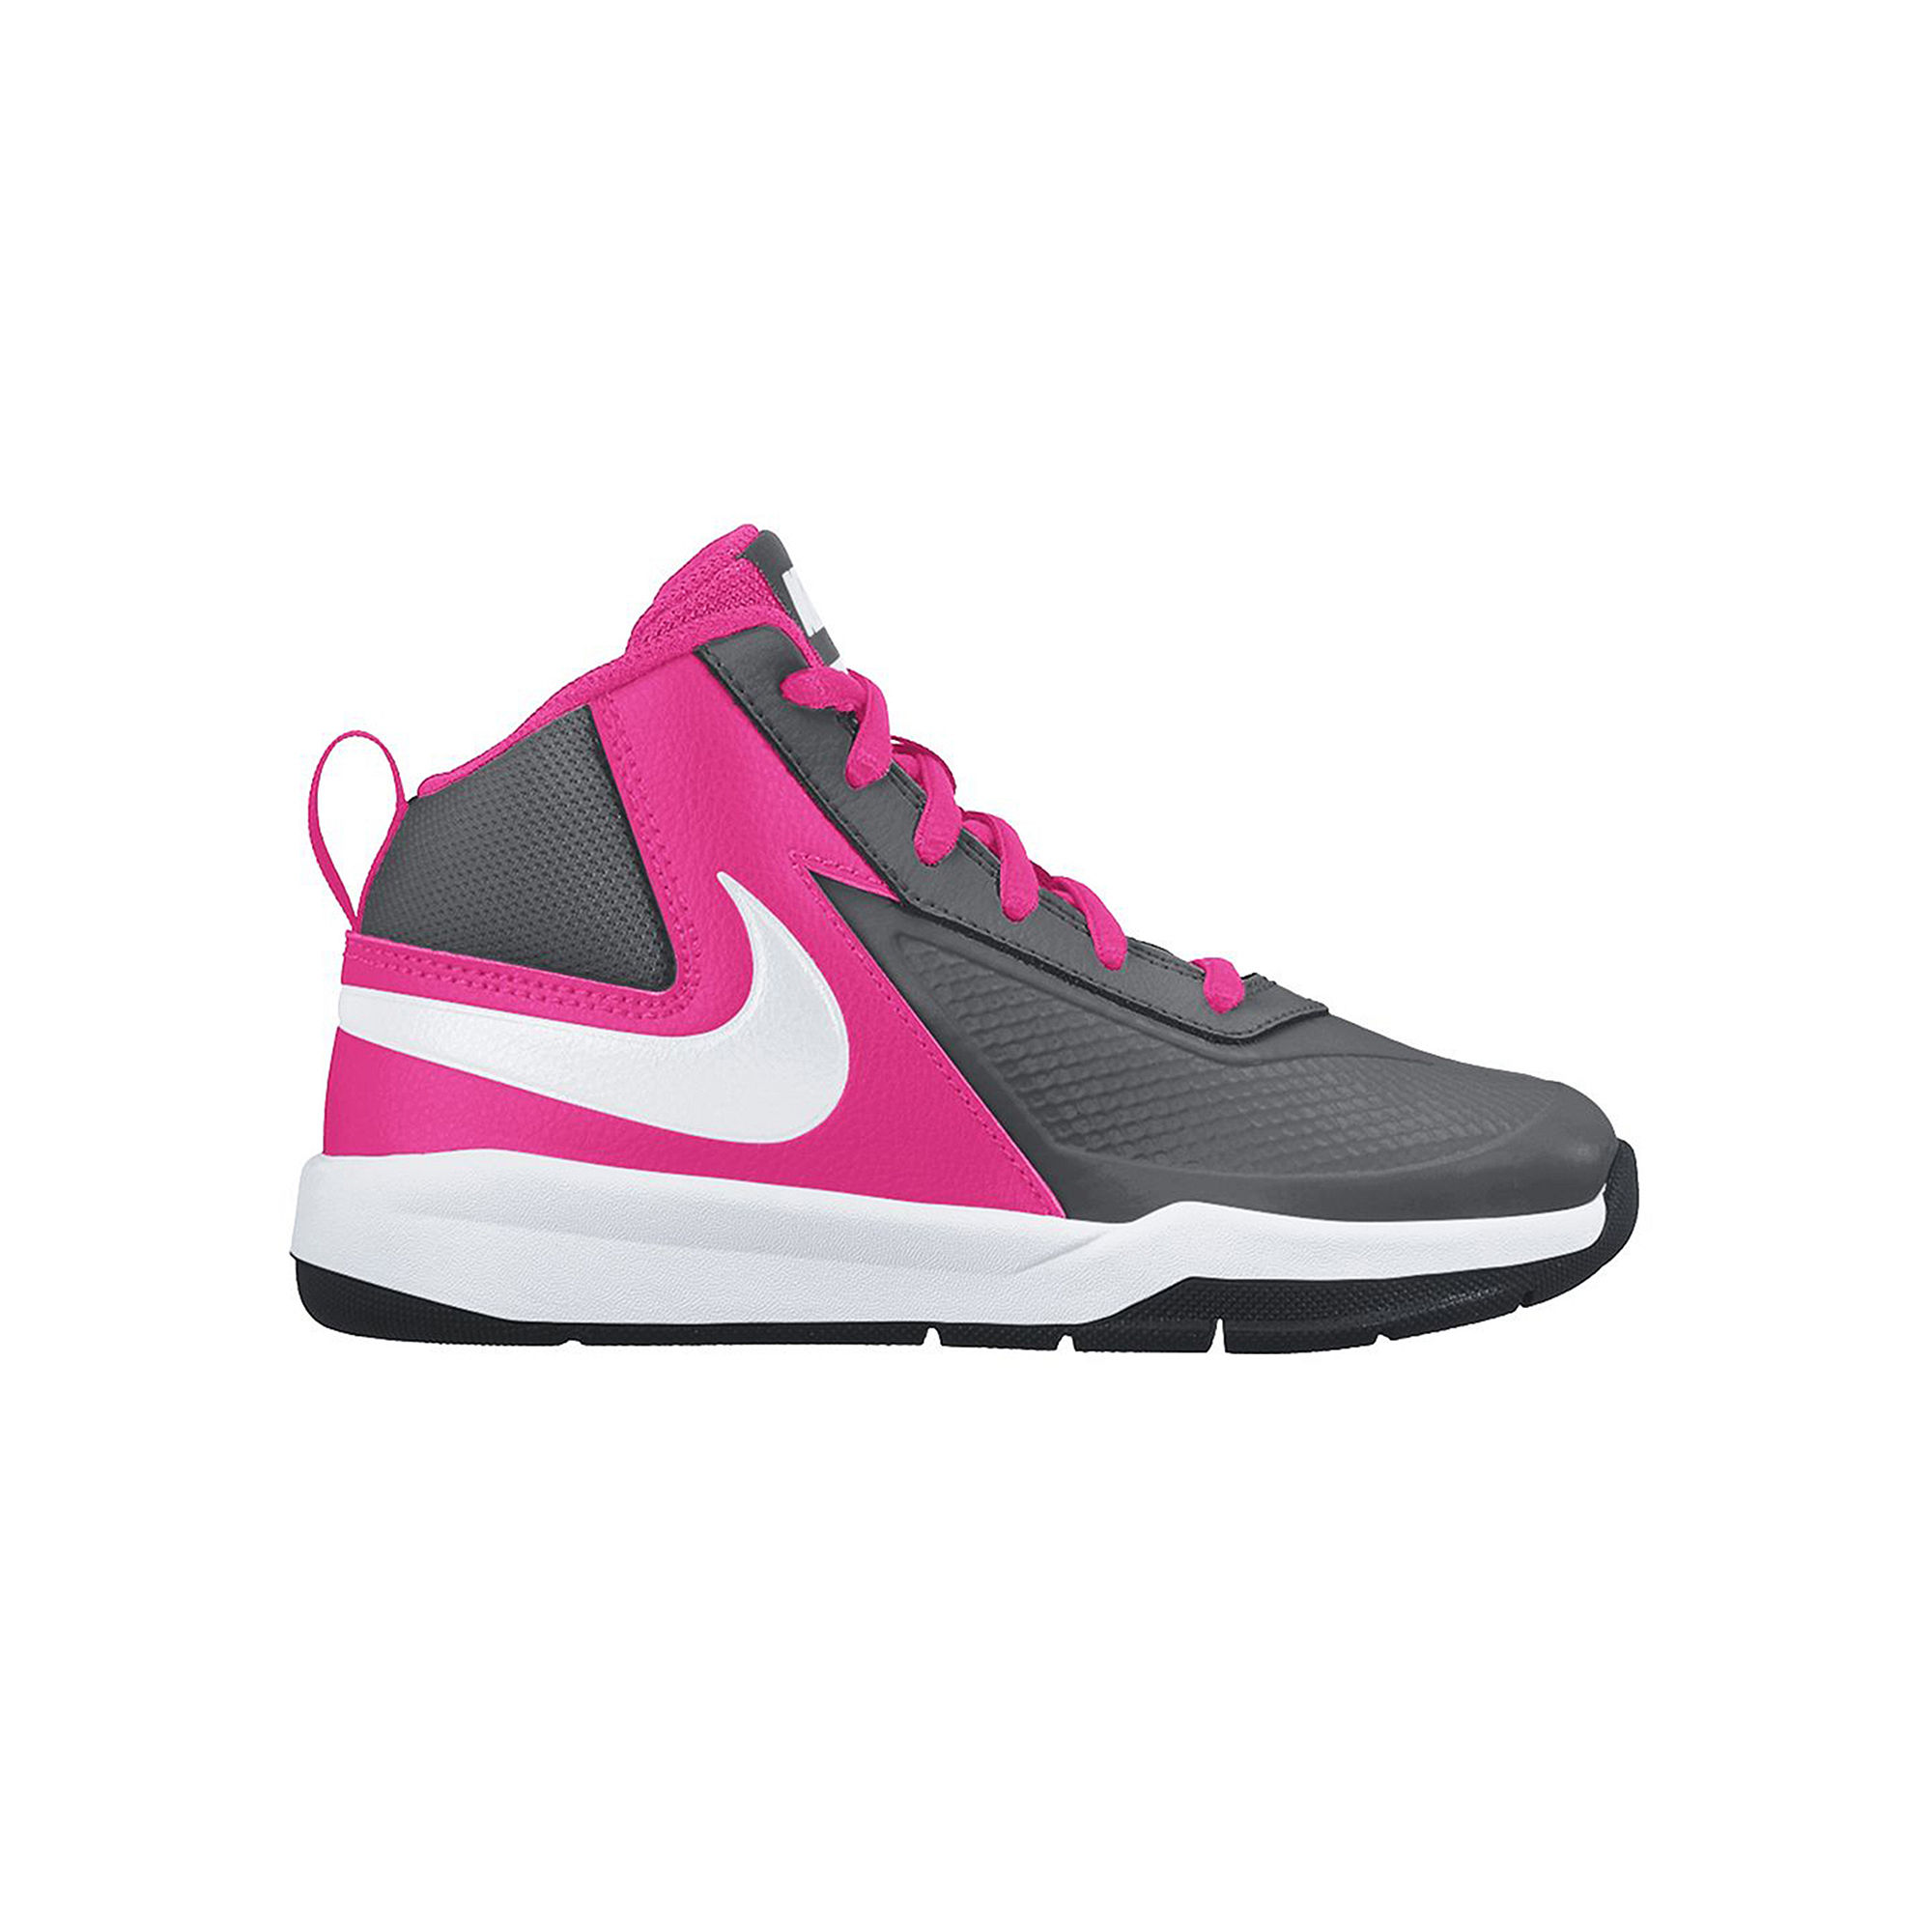 UPC 885259014059 product image for Nike Team Hustle D7 Girls Basketball Shoes - Little Kids/Big Kids | upcitemdb.com